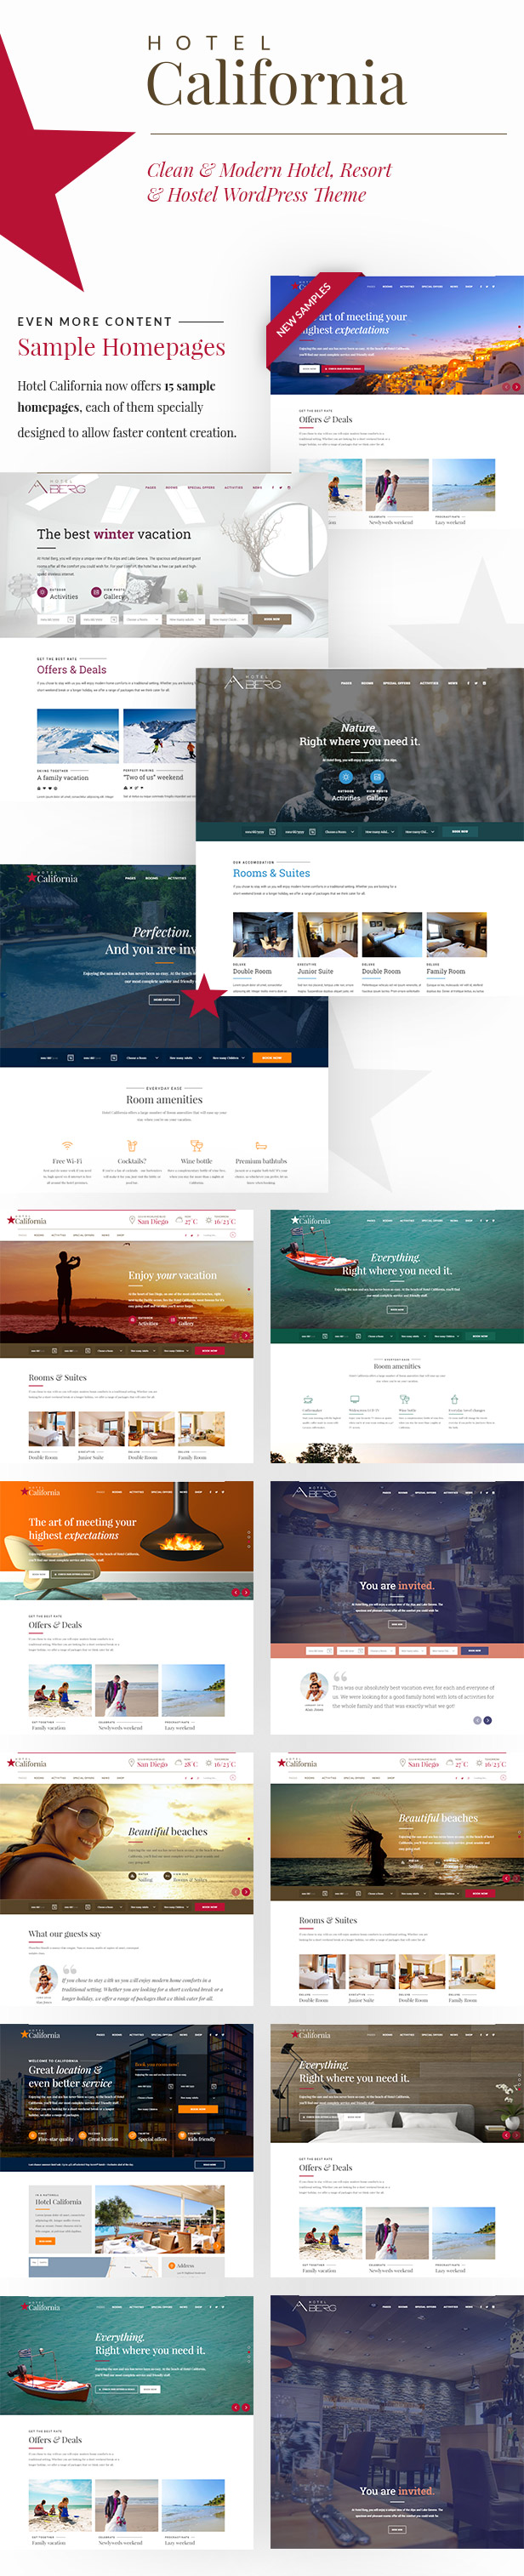 Hotel & Hostel Wordpress Theme - Hotel California - 1